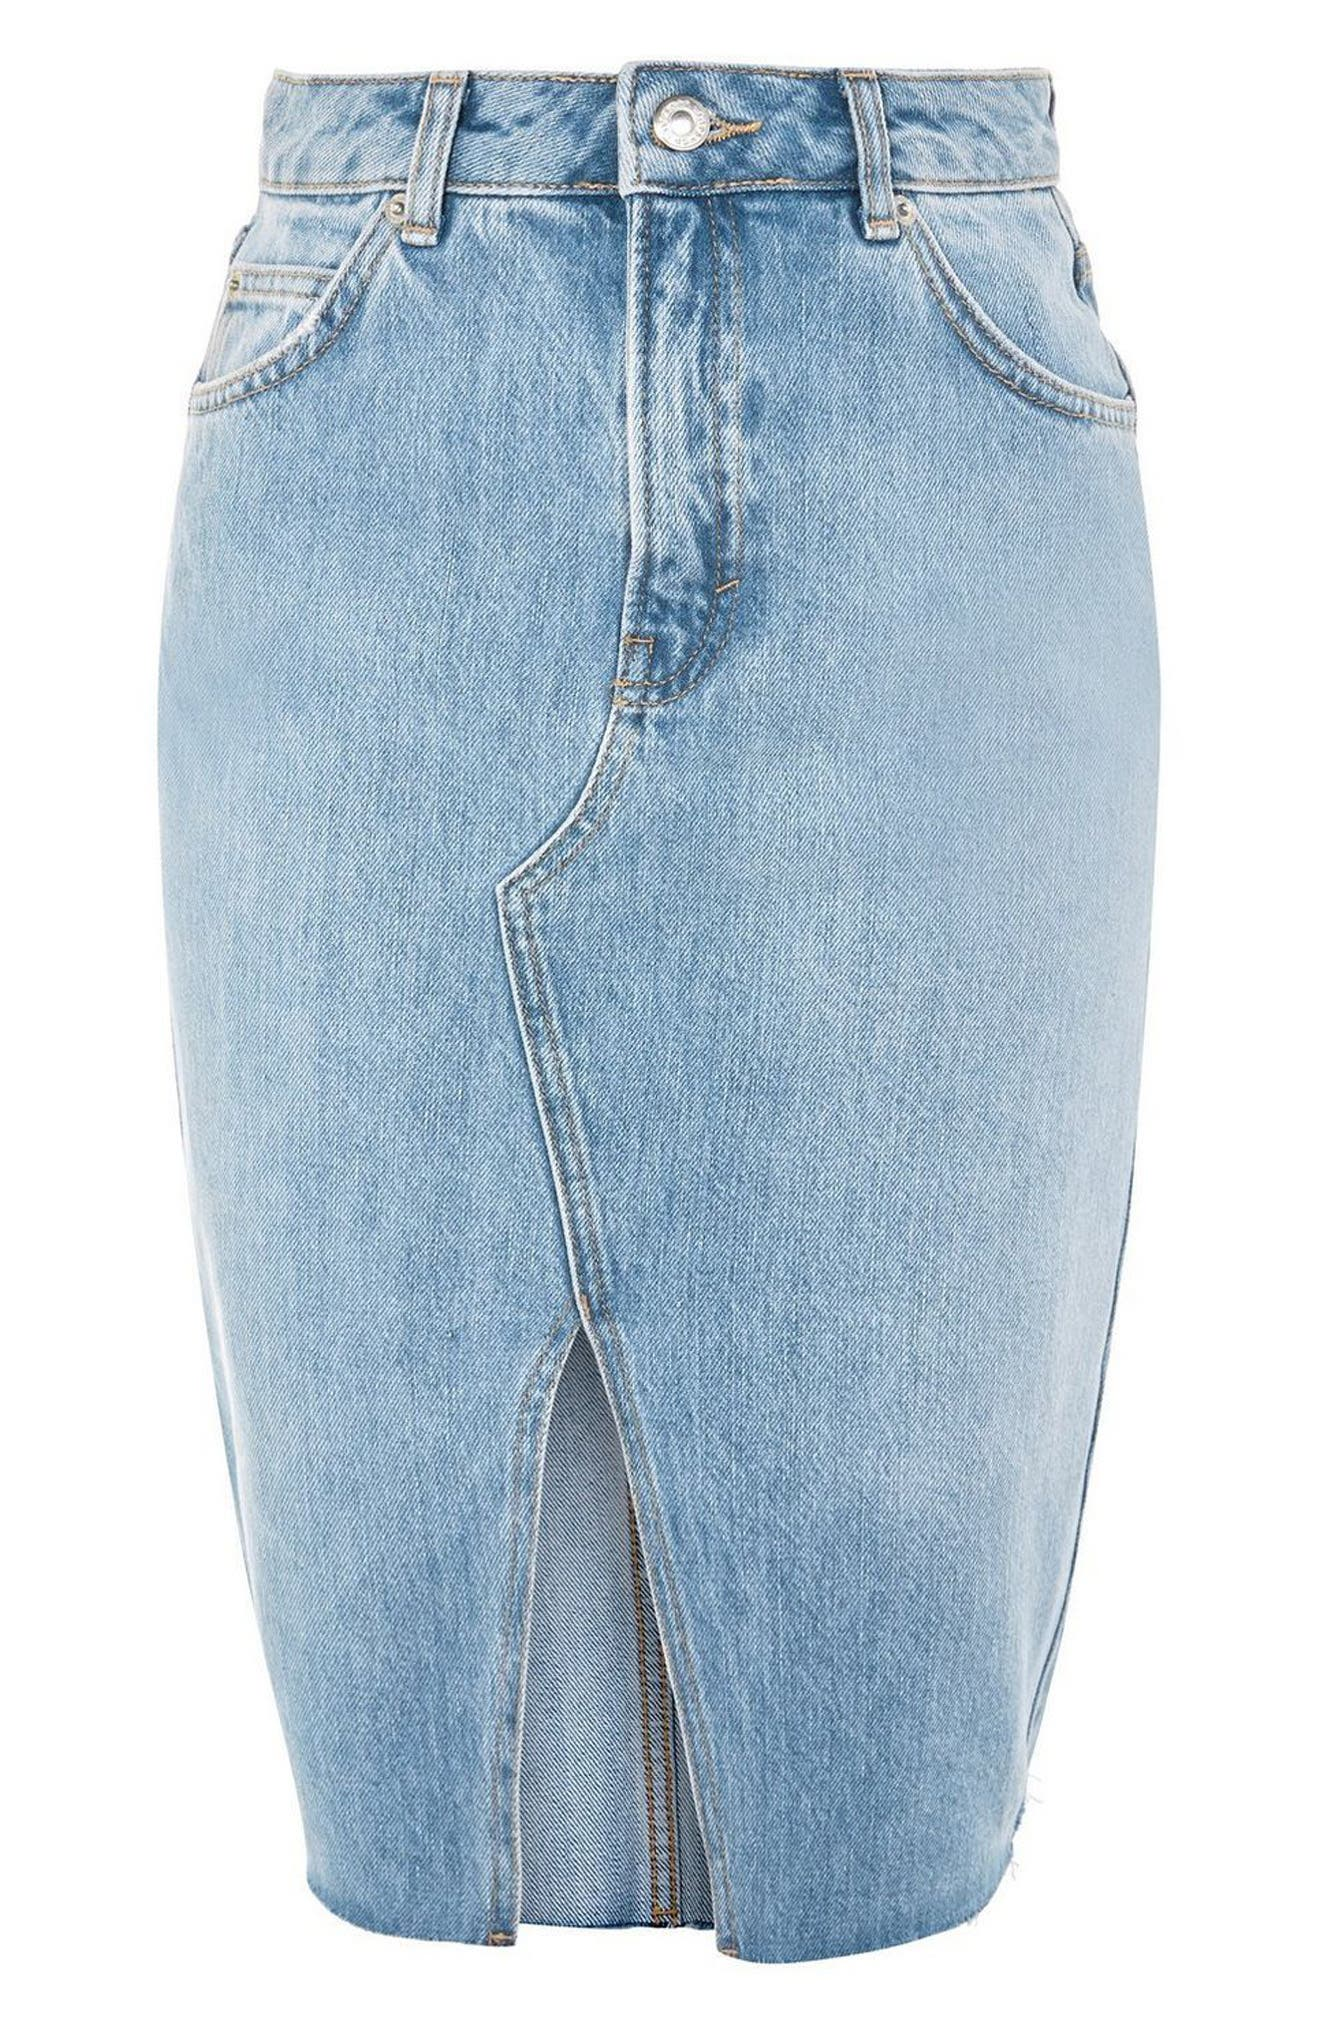 Denim Midi Skirt,                             Alternate thumbnail 3, color,                             Mid Denim